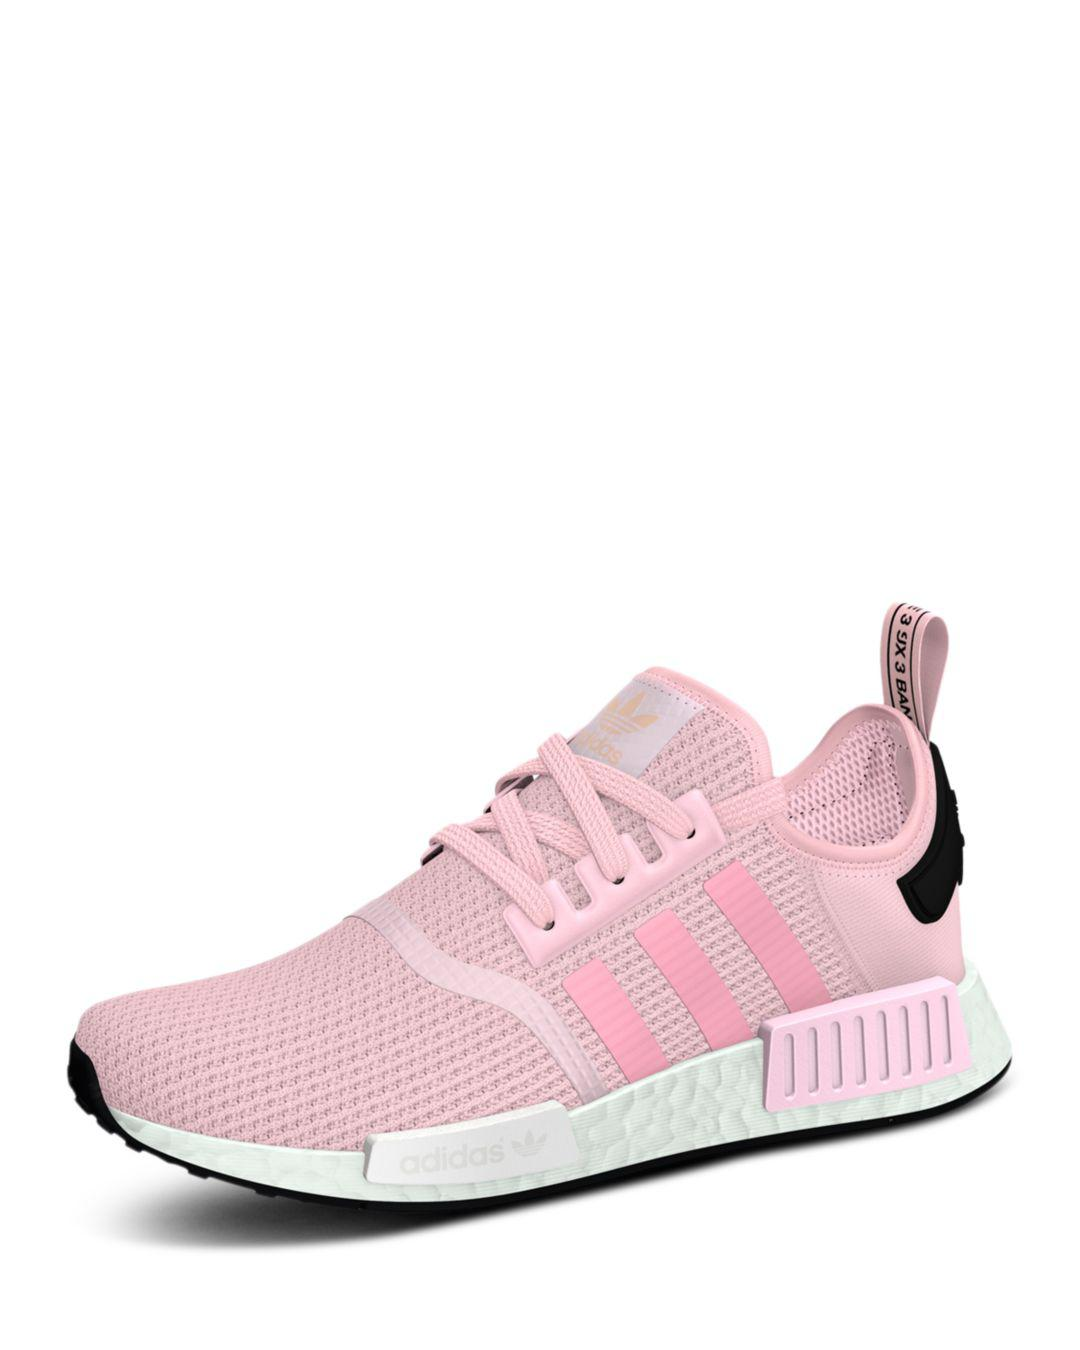 8e8e55fc3ddd Lyst - adidas Women s Nmd R1 Knit Lace Up Sneakers in Pink